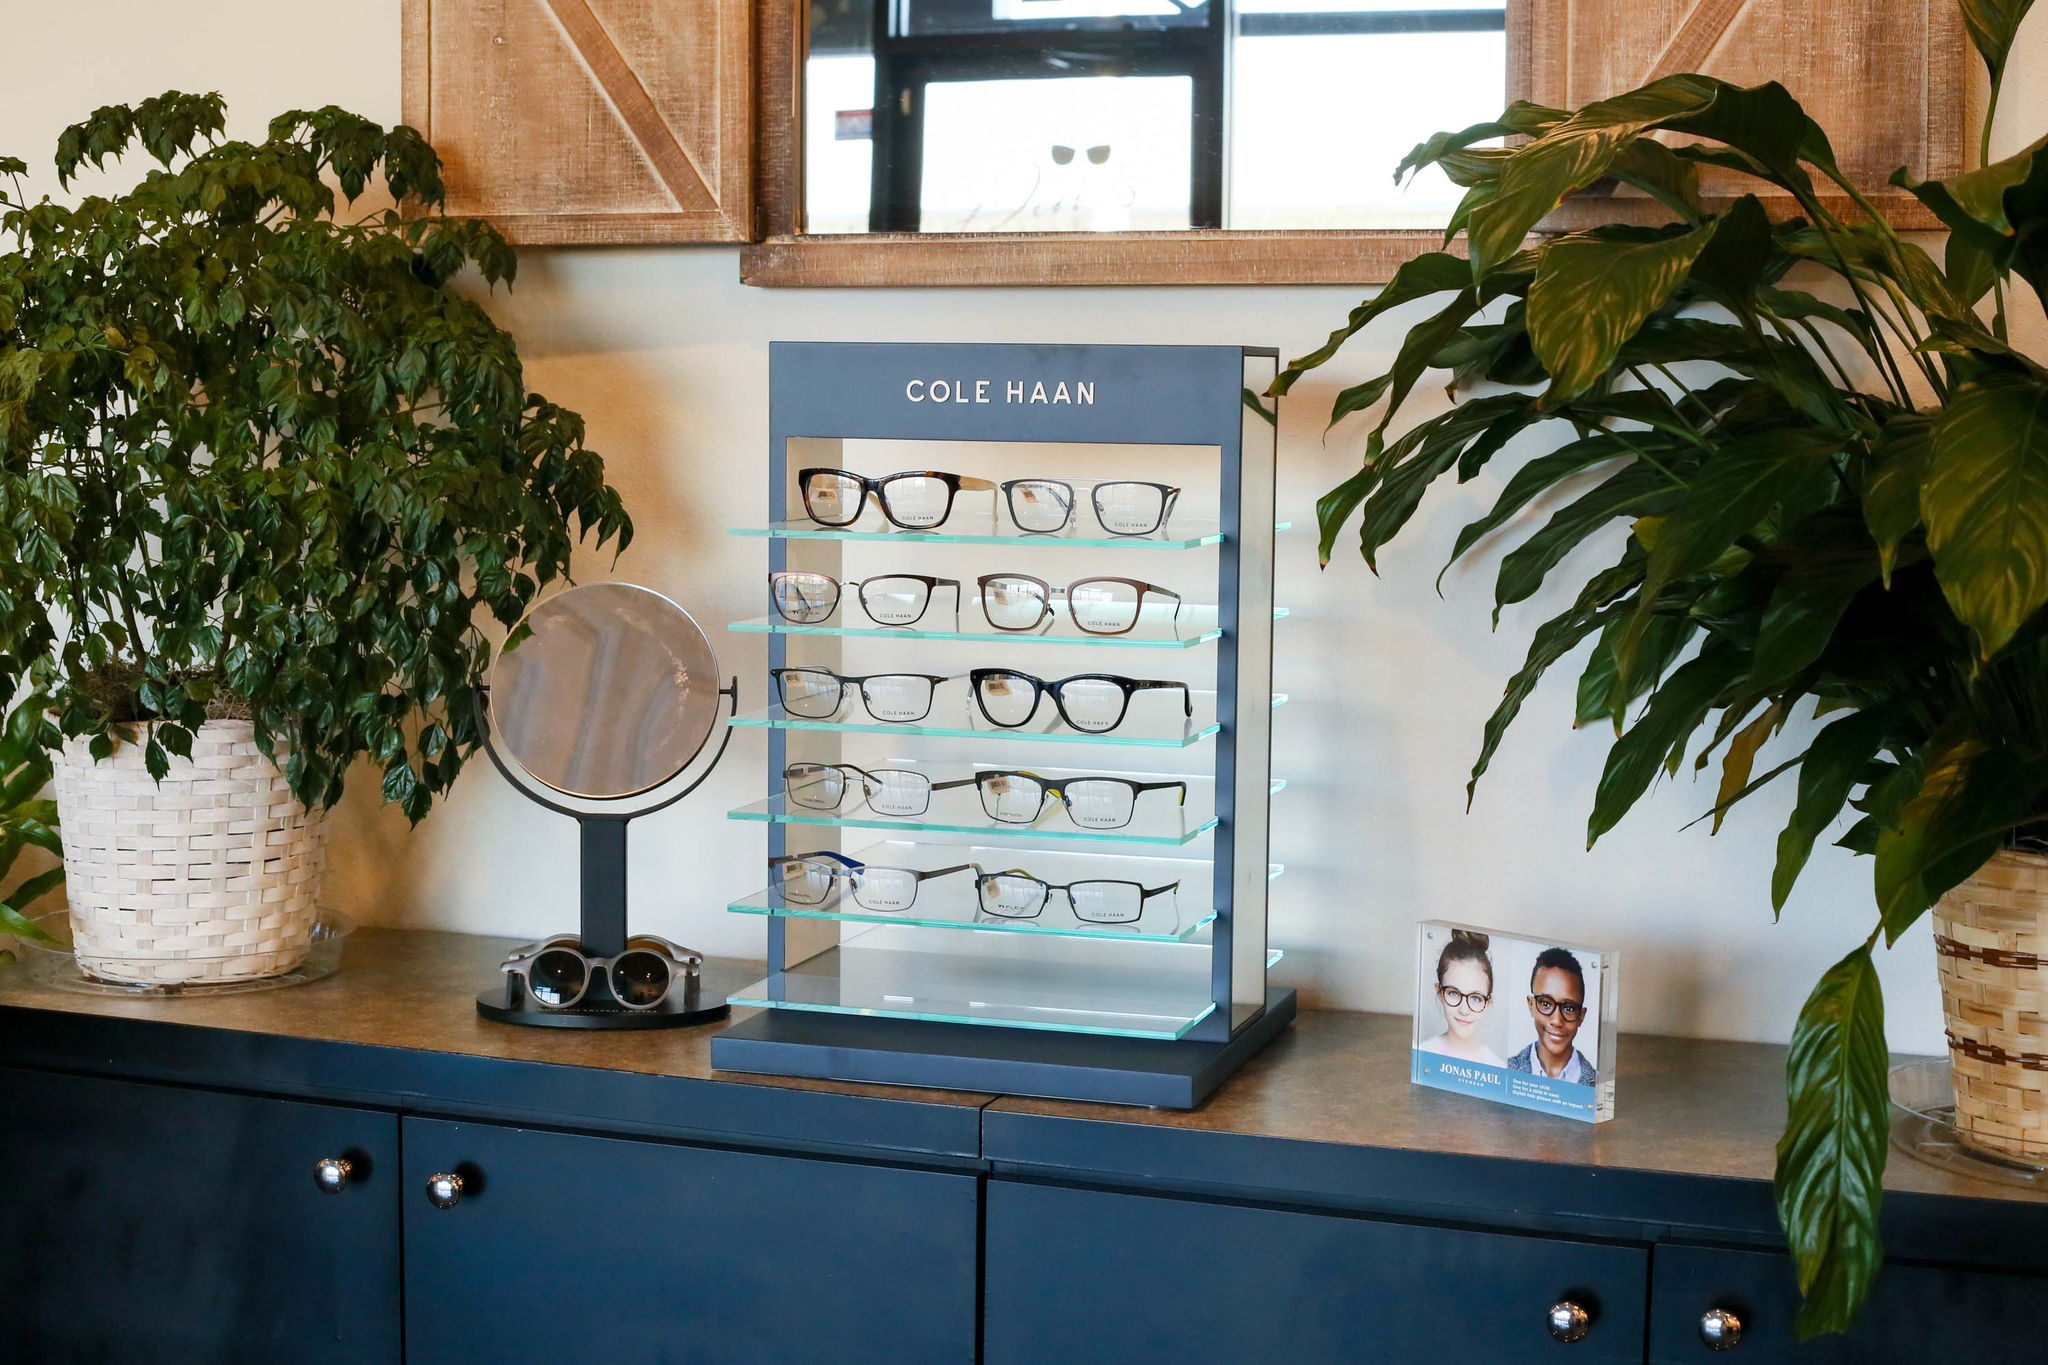 display case for cole haan